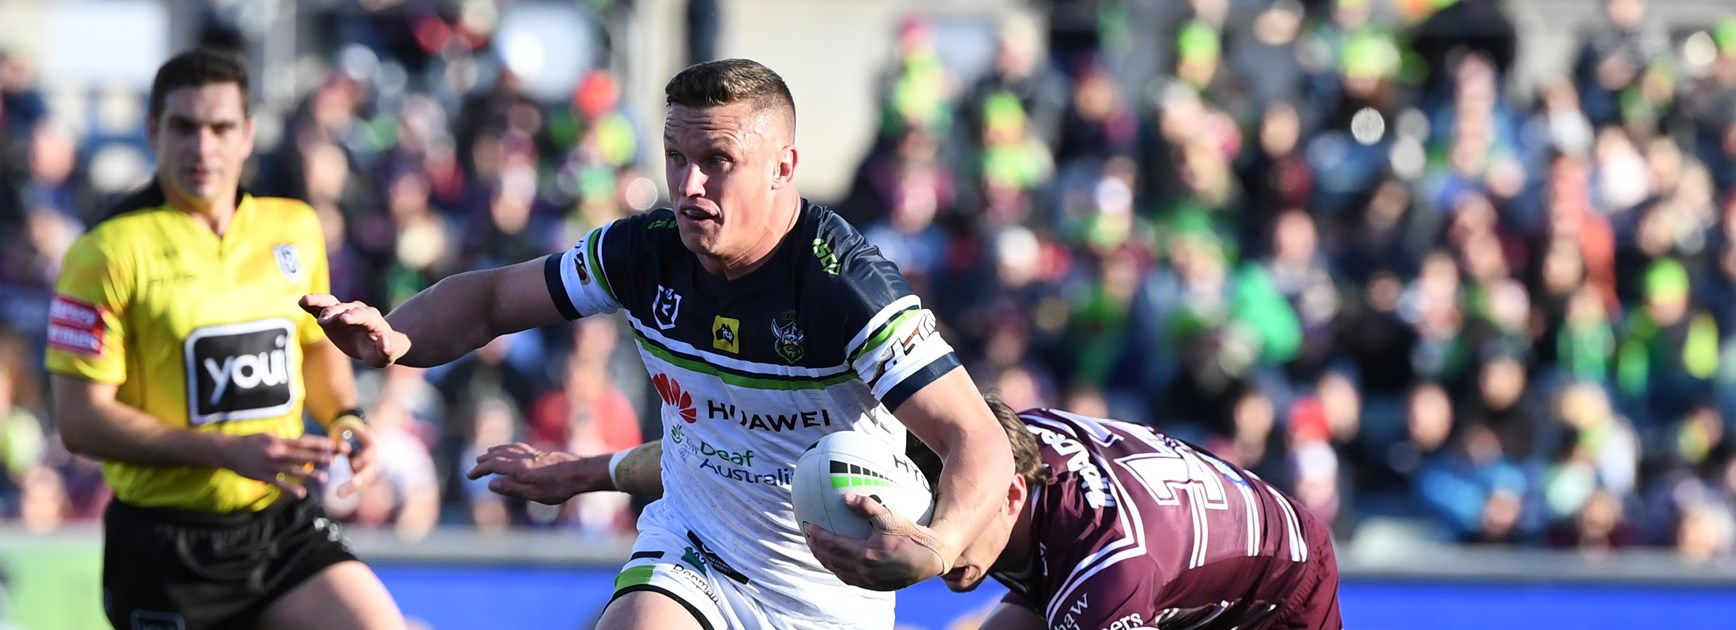 Raiders five-eighth Jack Wighton.